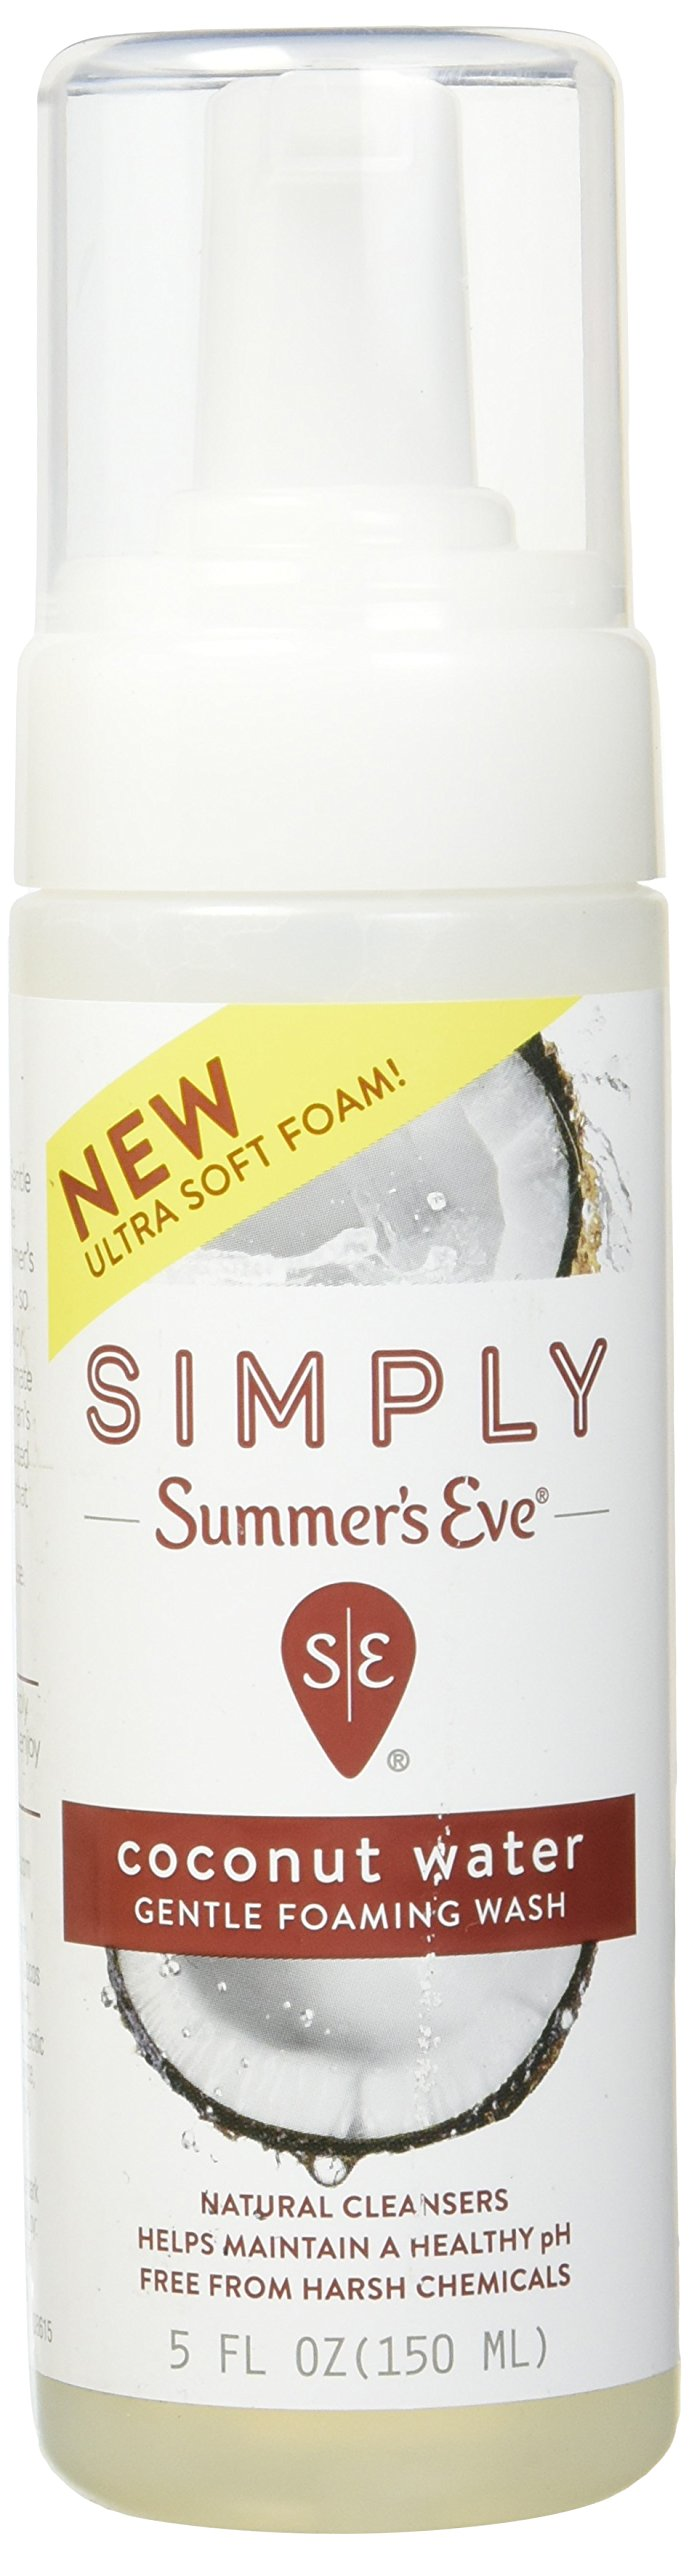 Simply Summer's Eve Gentle Foaming Wash - Helps Maintain a naturally healthy pH - Free From Harsh Chemicals, Dyes, Alcohol, and Parabens - Gynecologist Tested -  Coconut Water - 5 Ounce